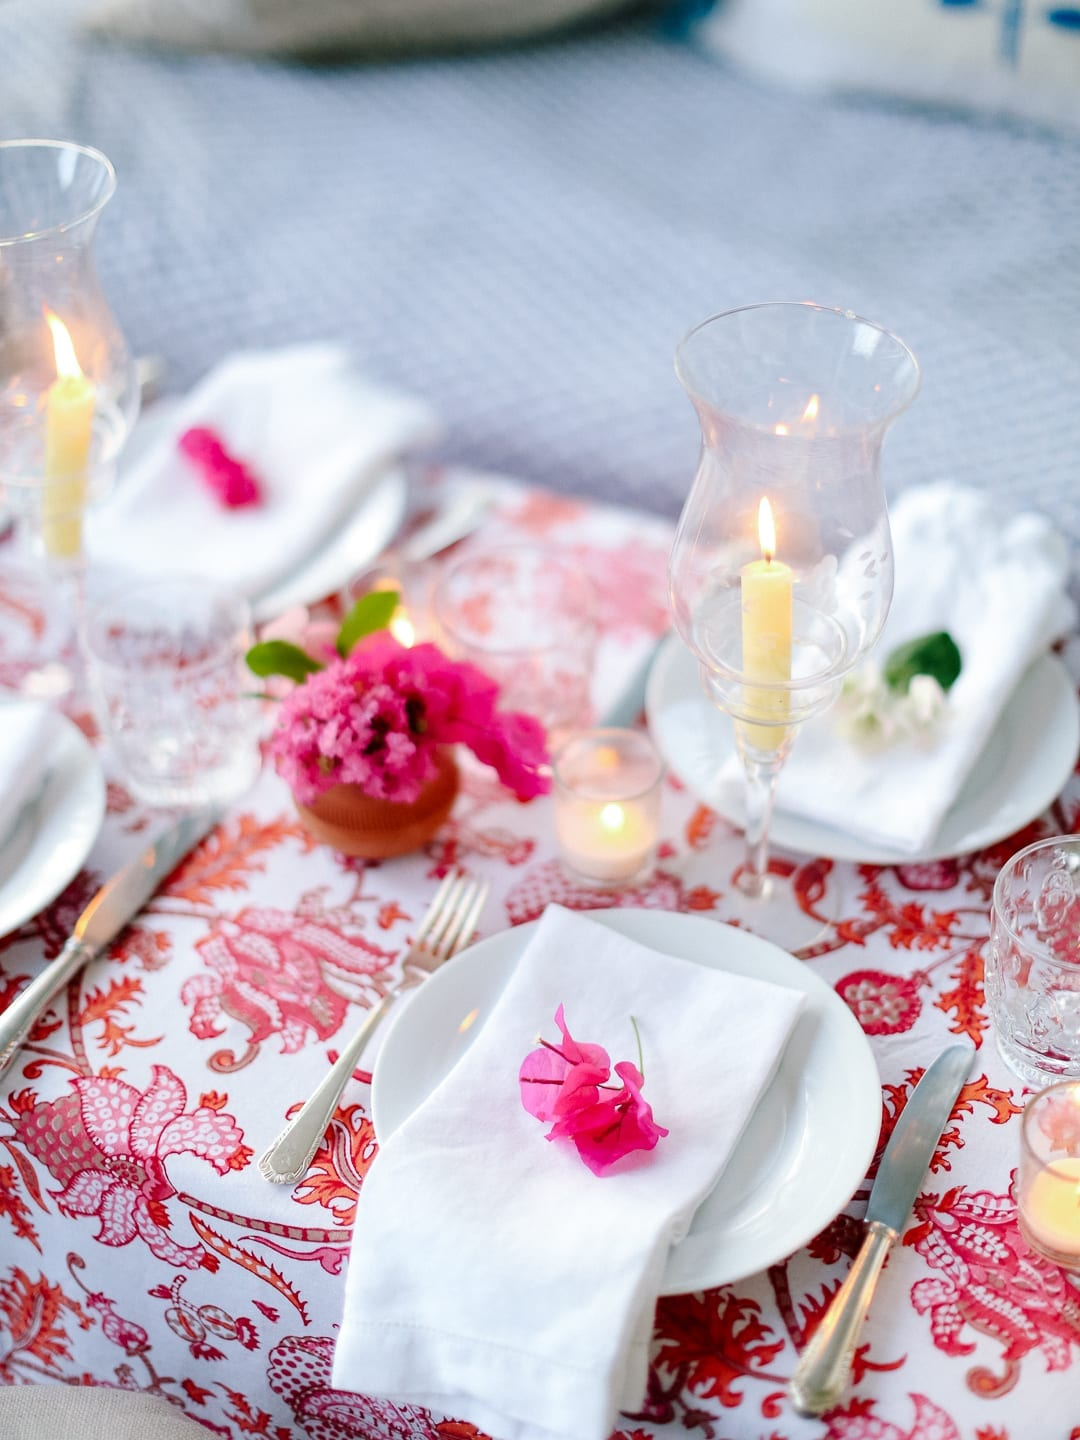 I Love How Glowy This Table Gets; The Combination Of The Pink Table Cloth  From Roberta Roller Rabbit, The Bougainvillea And The Candles Make For The  Picture ...